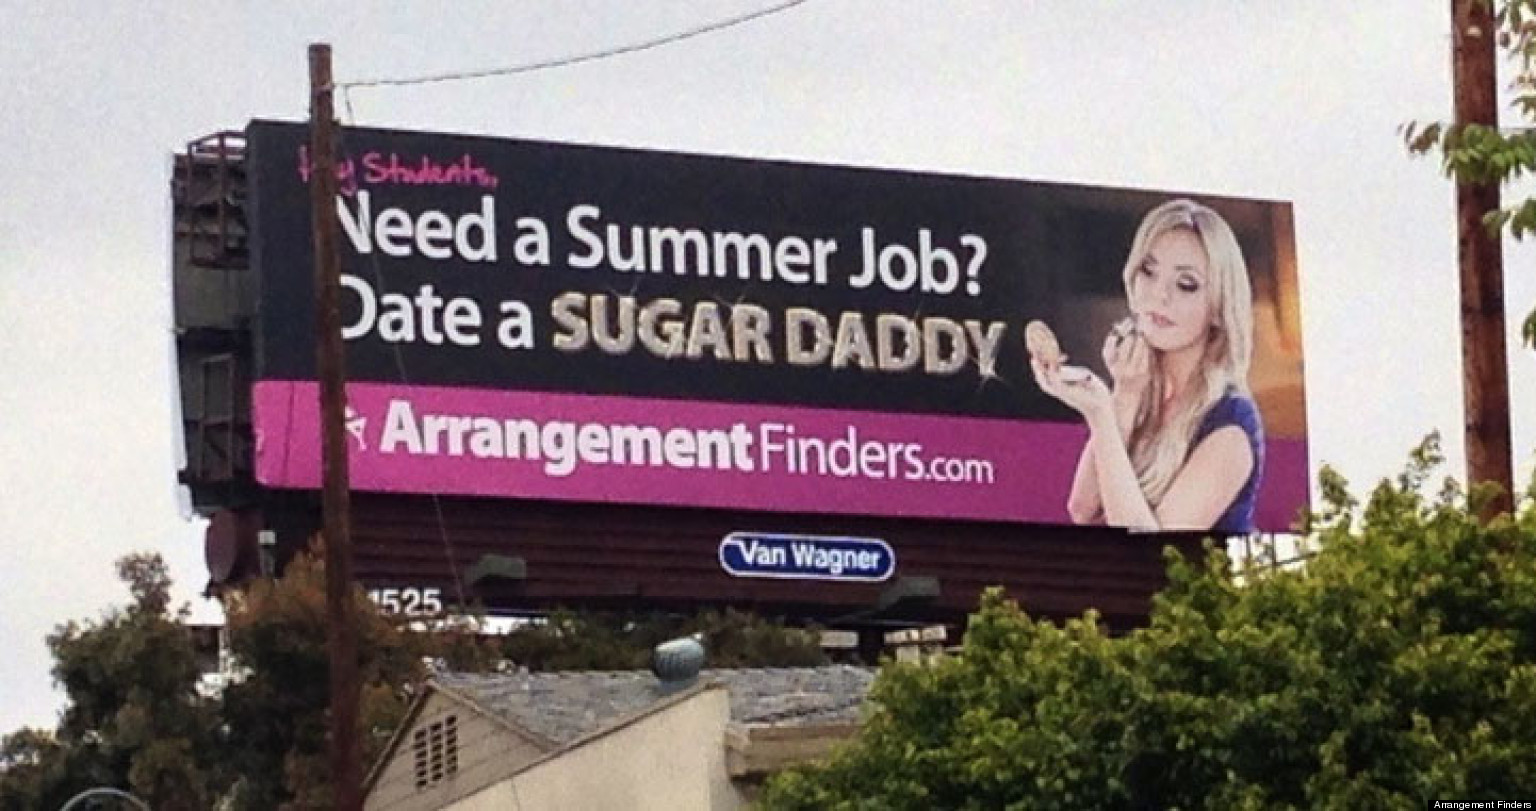 sugar daddy billboard near ucla offends students neighbors sugar daddy billboard near ucla offends students neighbors video photo the huffington post